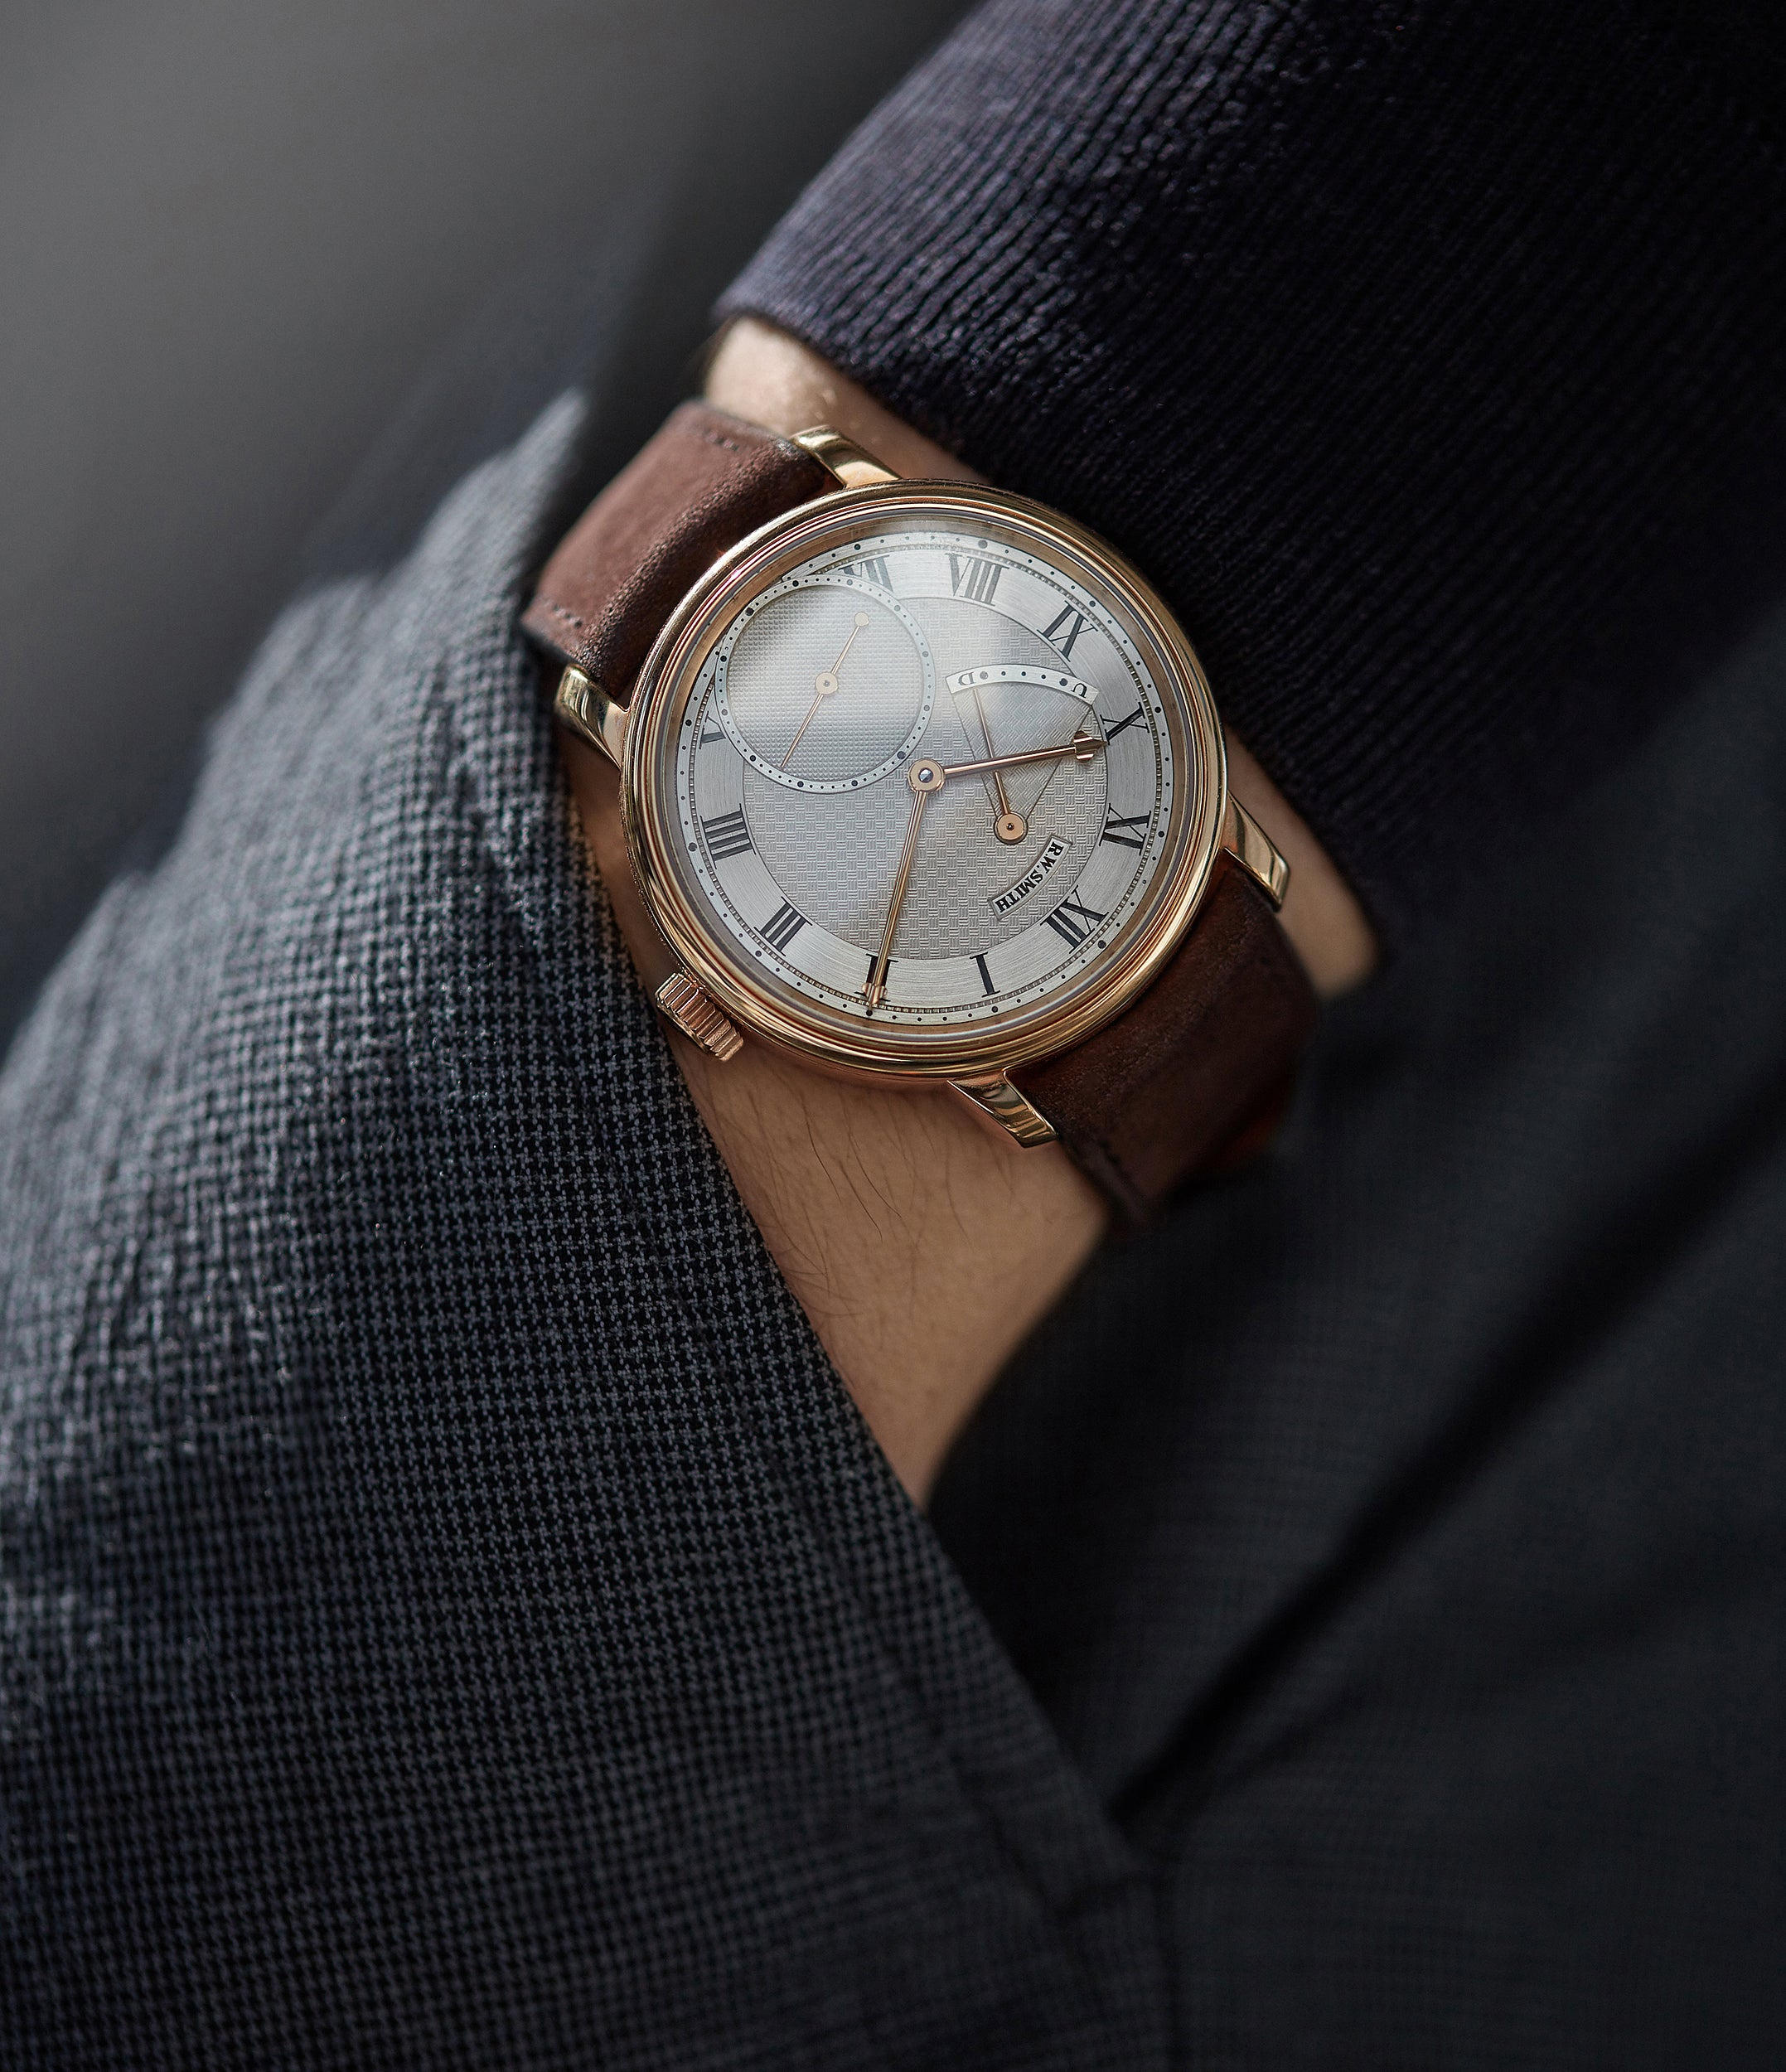 men's luxury wristwatch Roger Smith Series 2 rose gold time-only dress watch British for sale online A Collected Man London